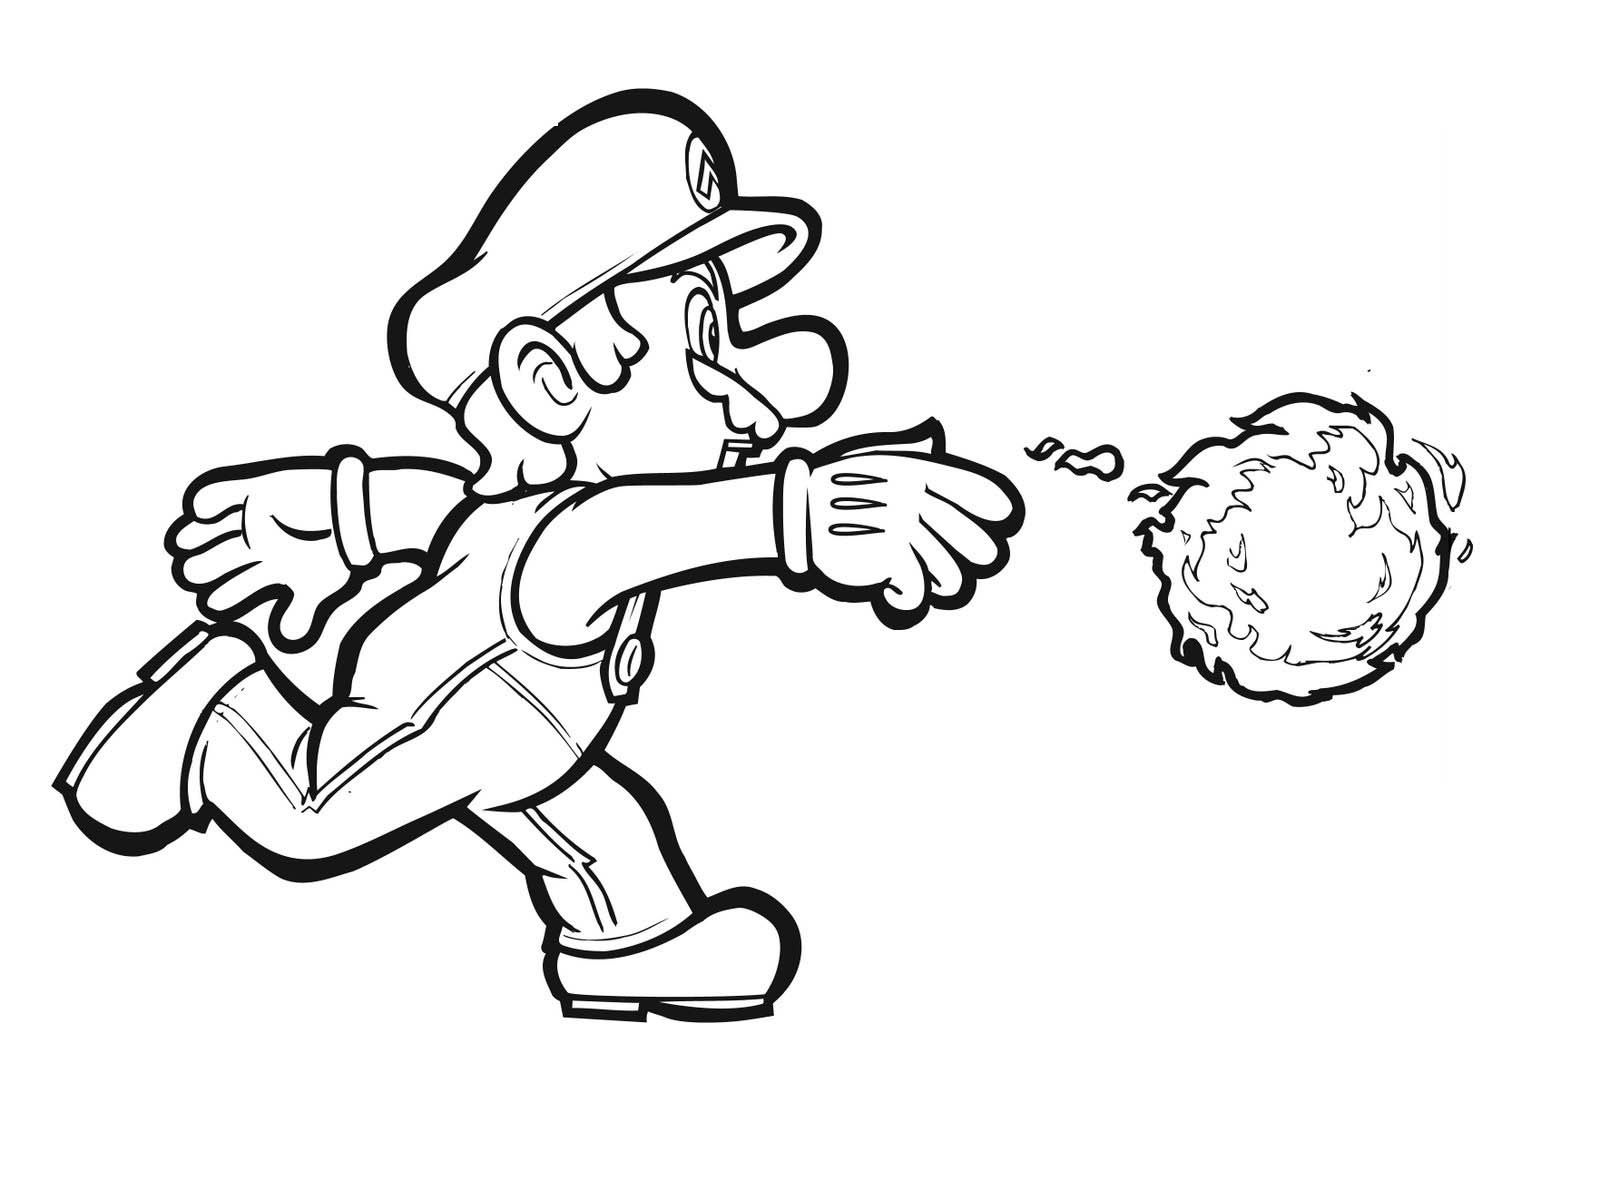 Coloring pages for kids mario bros - Super Mario Coloring Pages